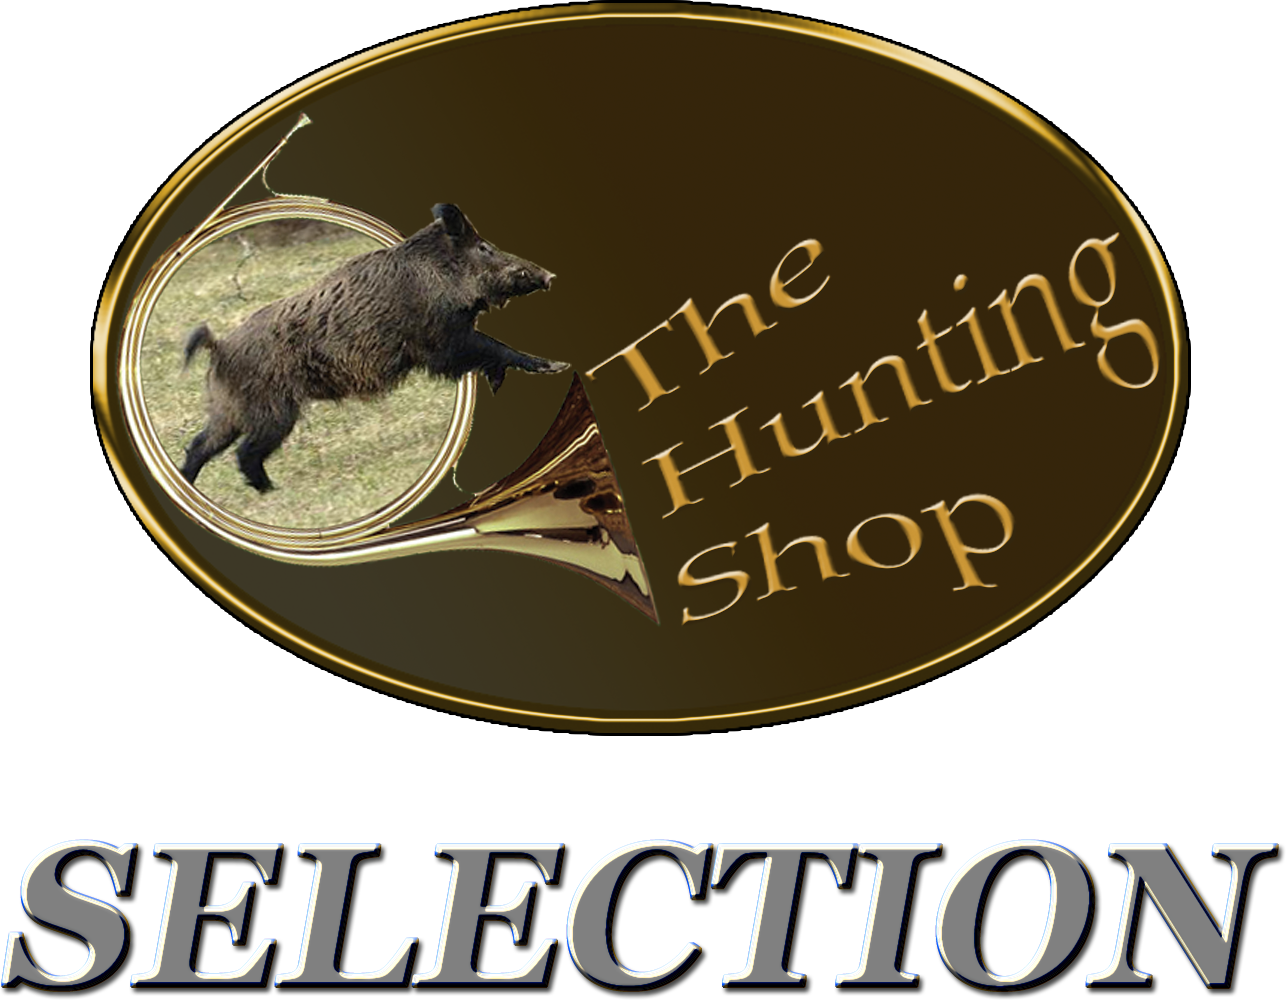 Sélection The Hunting Shop